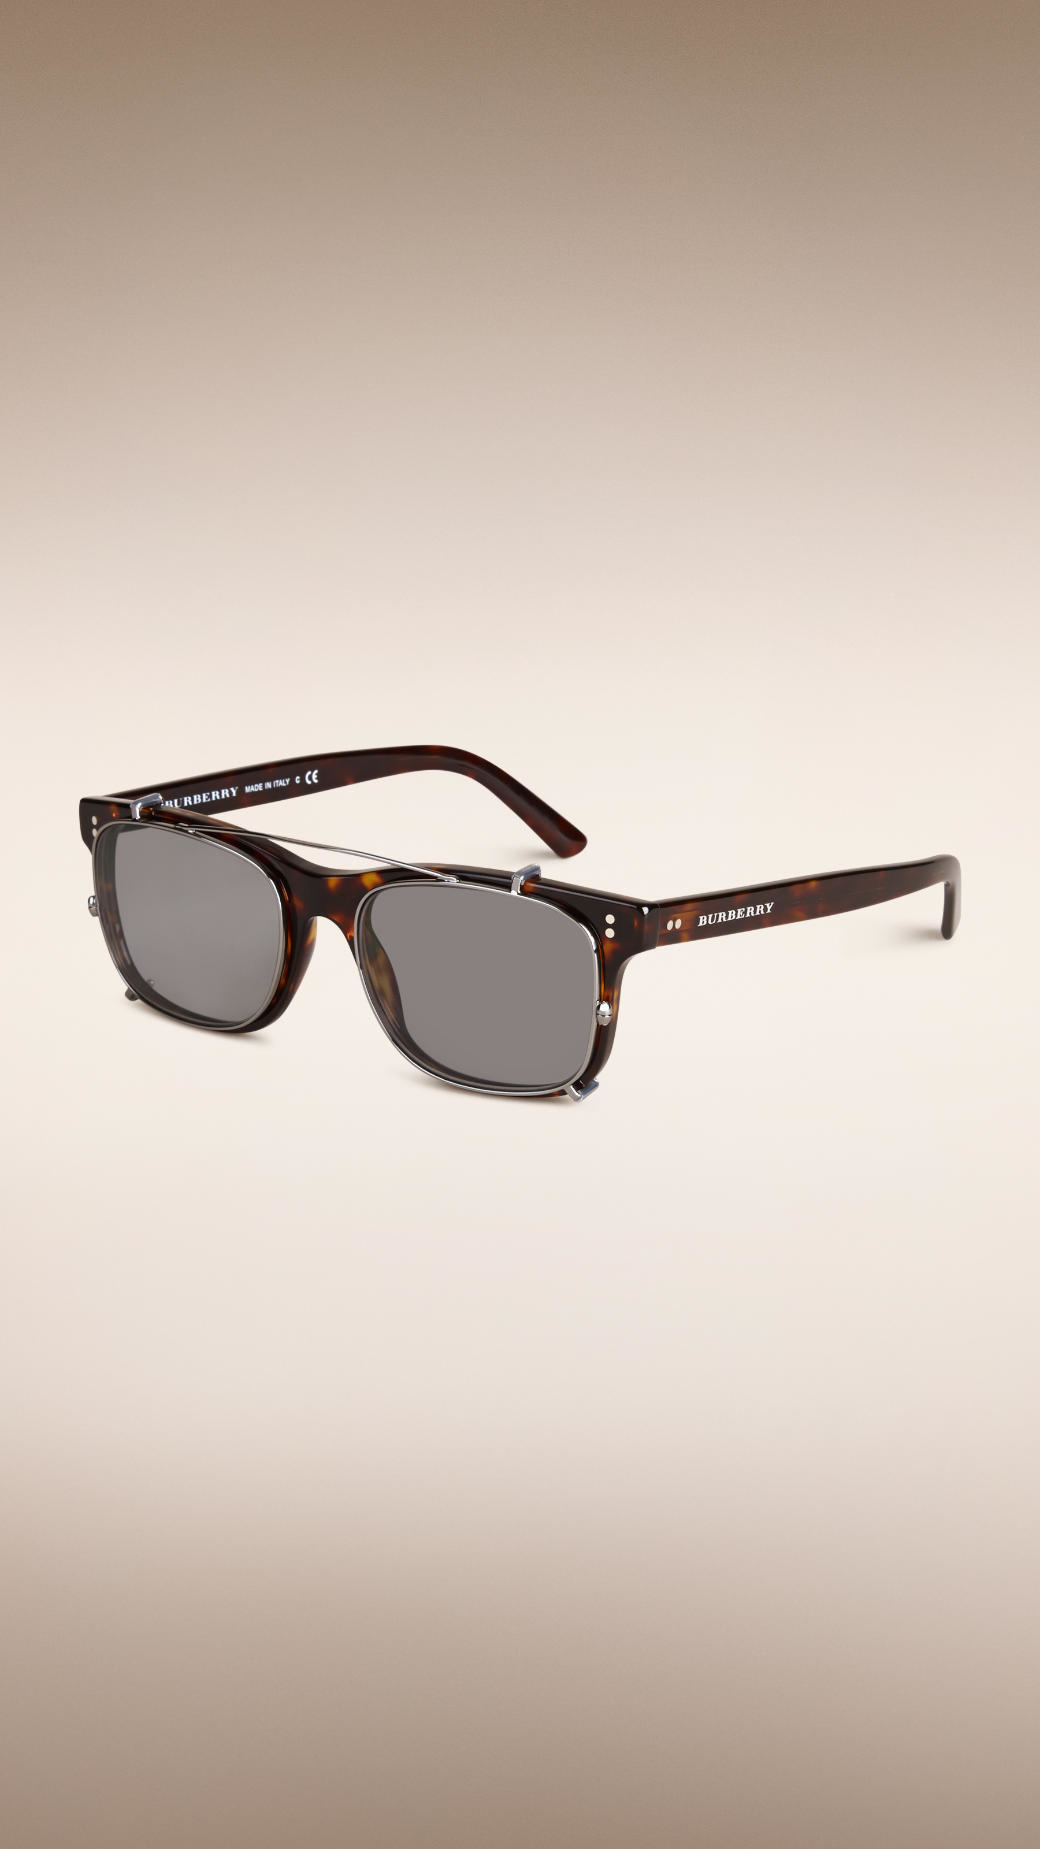 570e00169340 Burberry Square Frame Sunglasses With Clip-on Lenses in Brown for ...